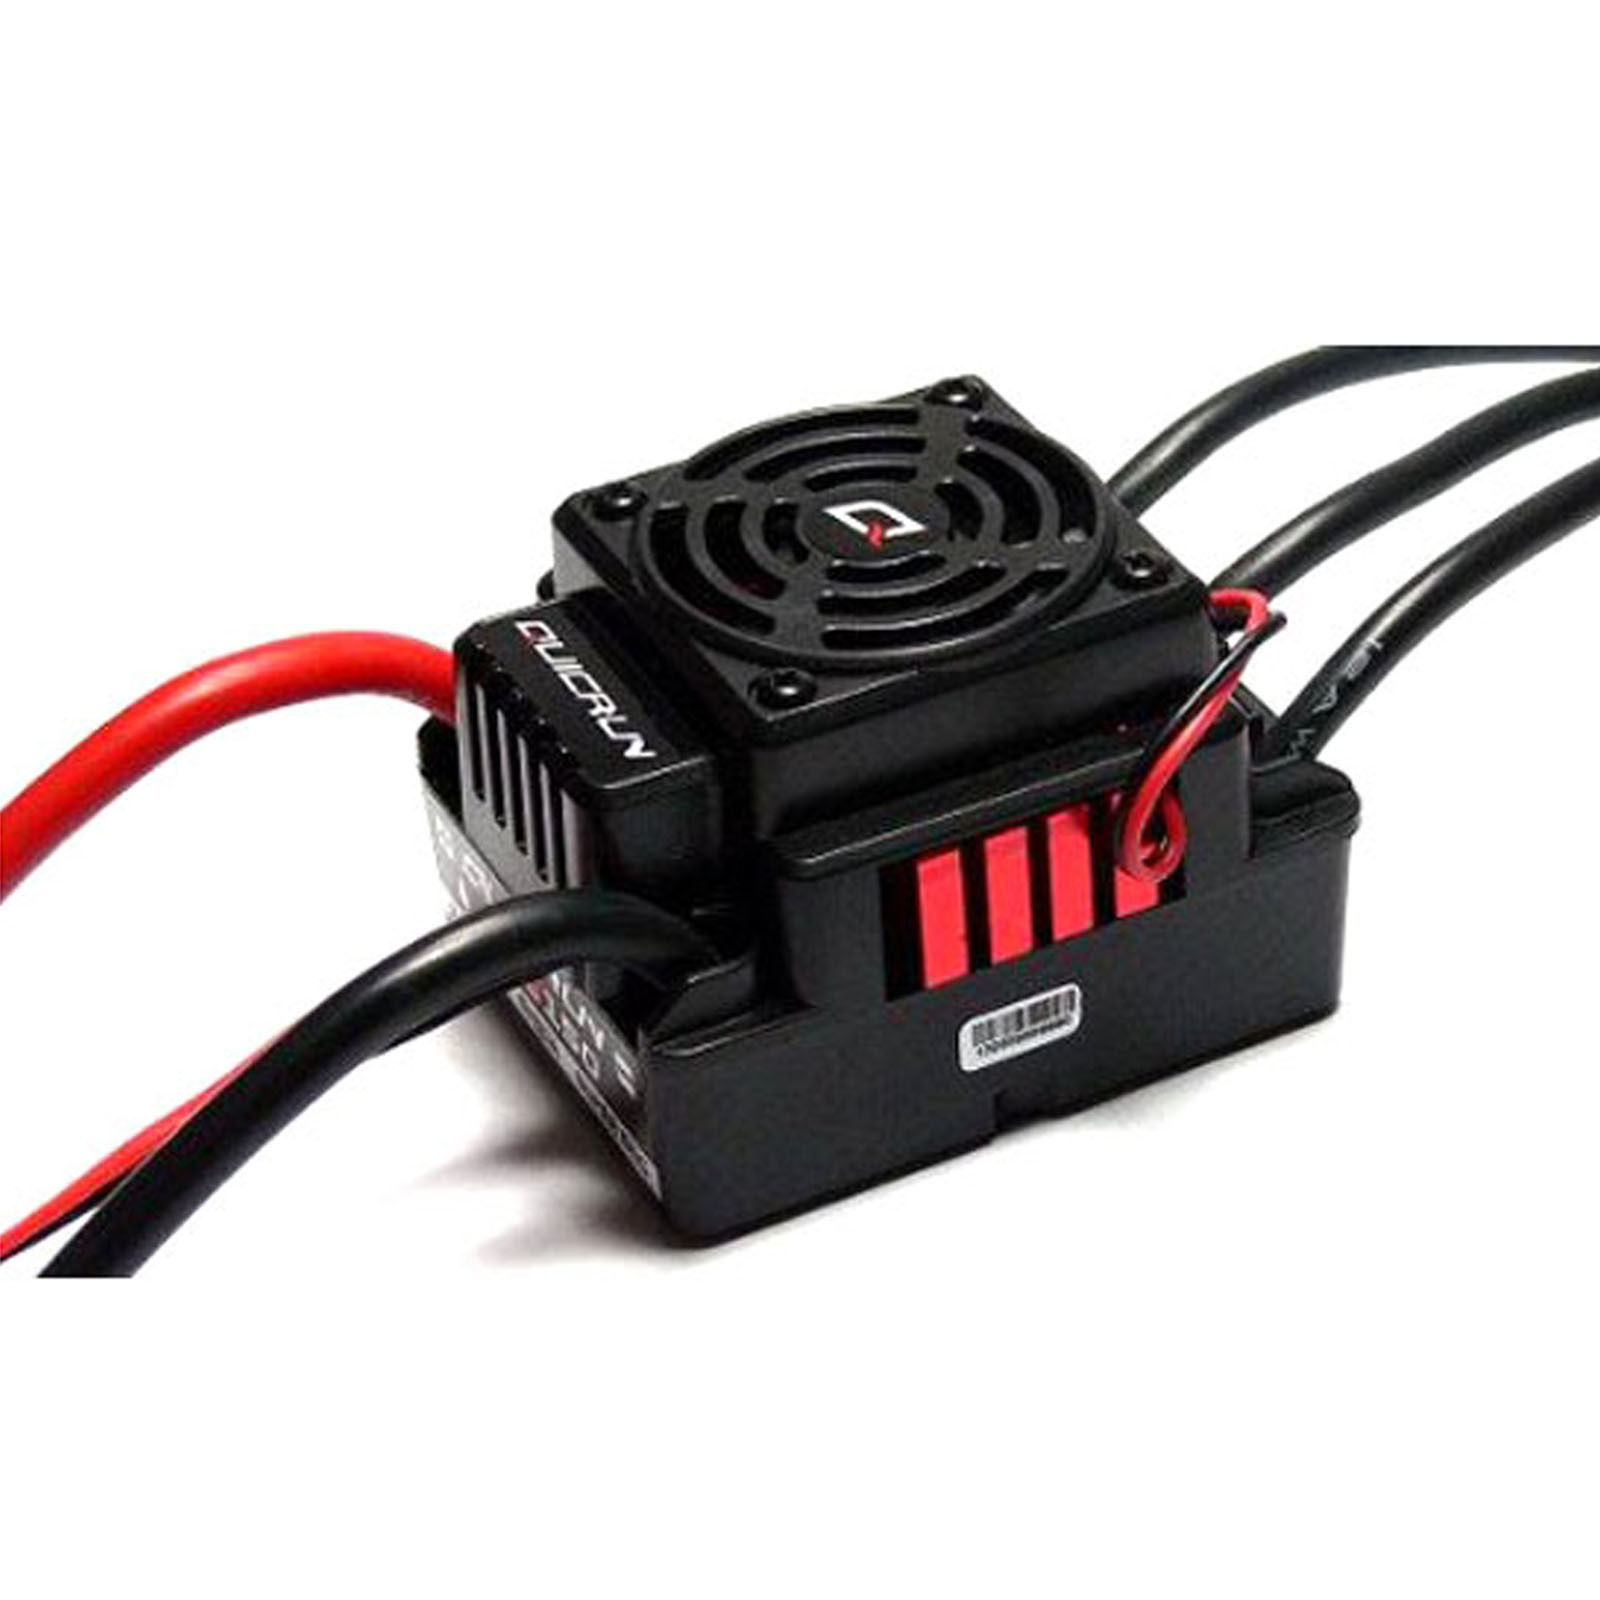 Hobbywing QUICRUN WP-8BL150 Waterproof 150A Brushless ESC For 1//8 RC Car Parts